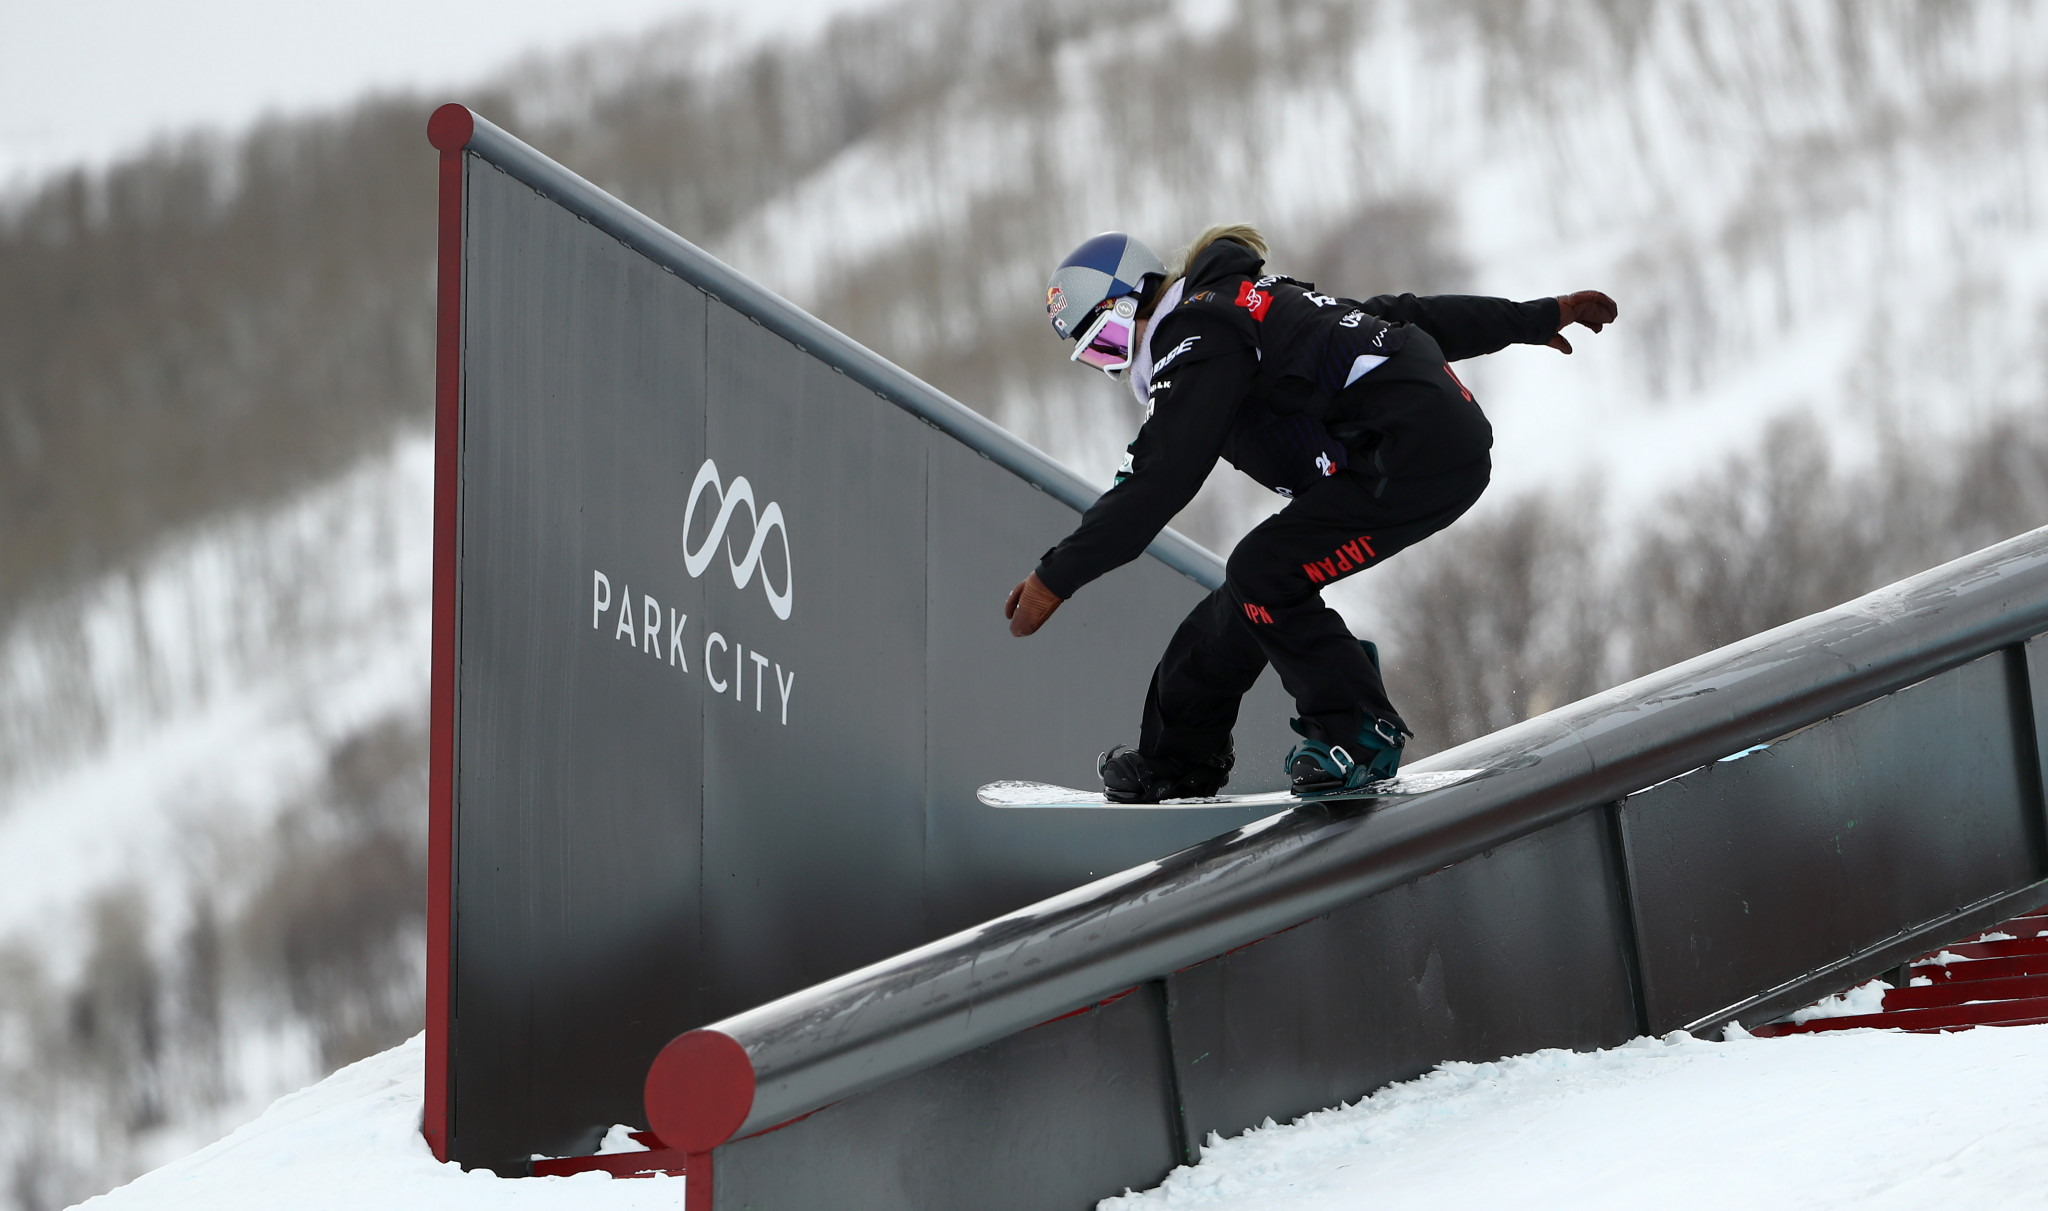 International Ski Federation and World Snowboard Federation sign historic unification agreement